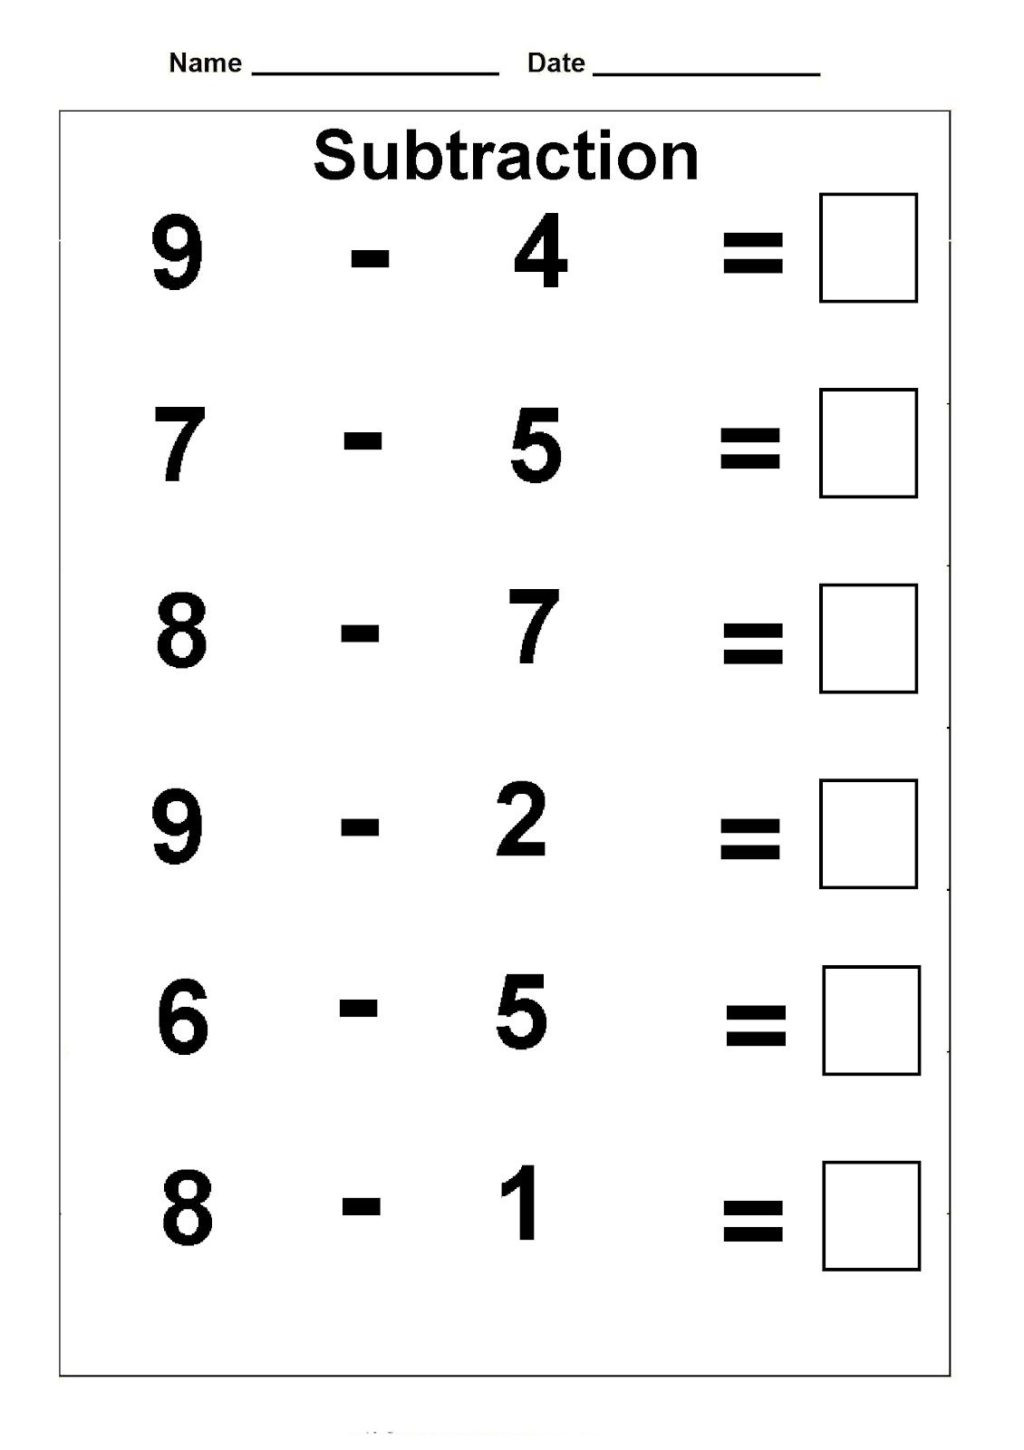 Subtraction Worksheets 1st Grade Worksheet 1st Grade Math Worksheets Free Worksheet